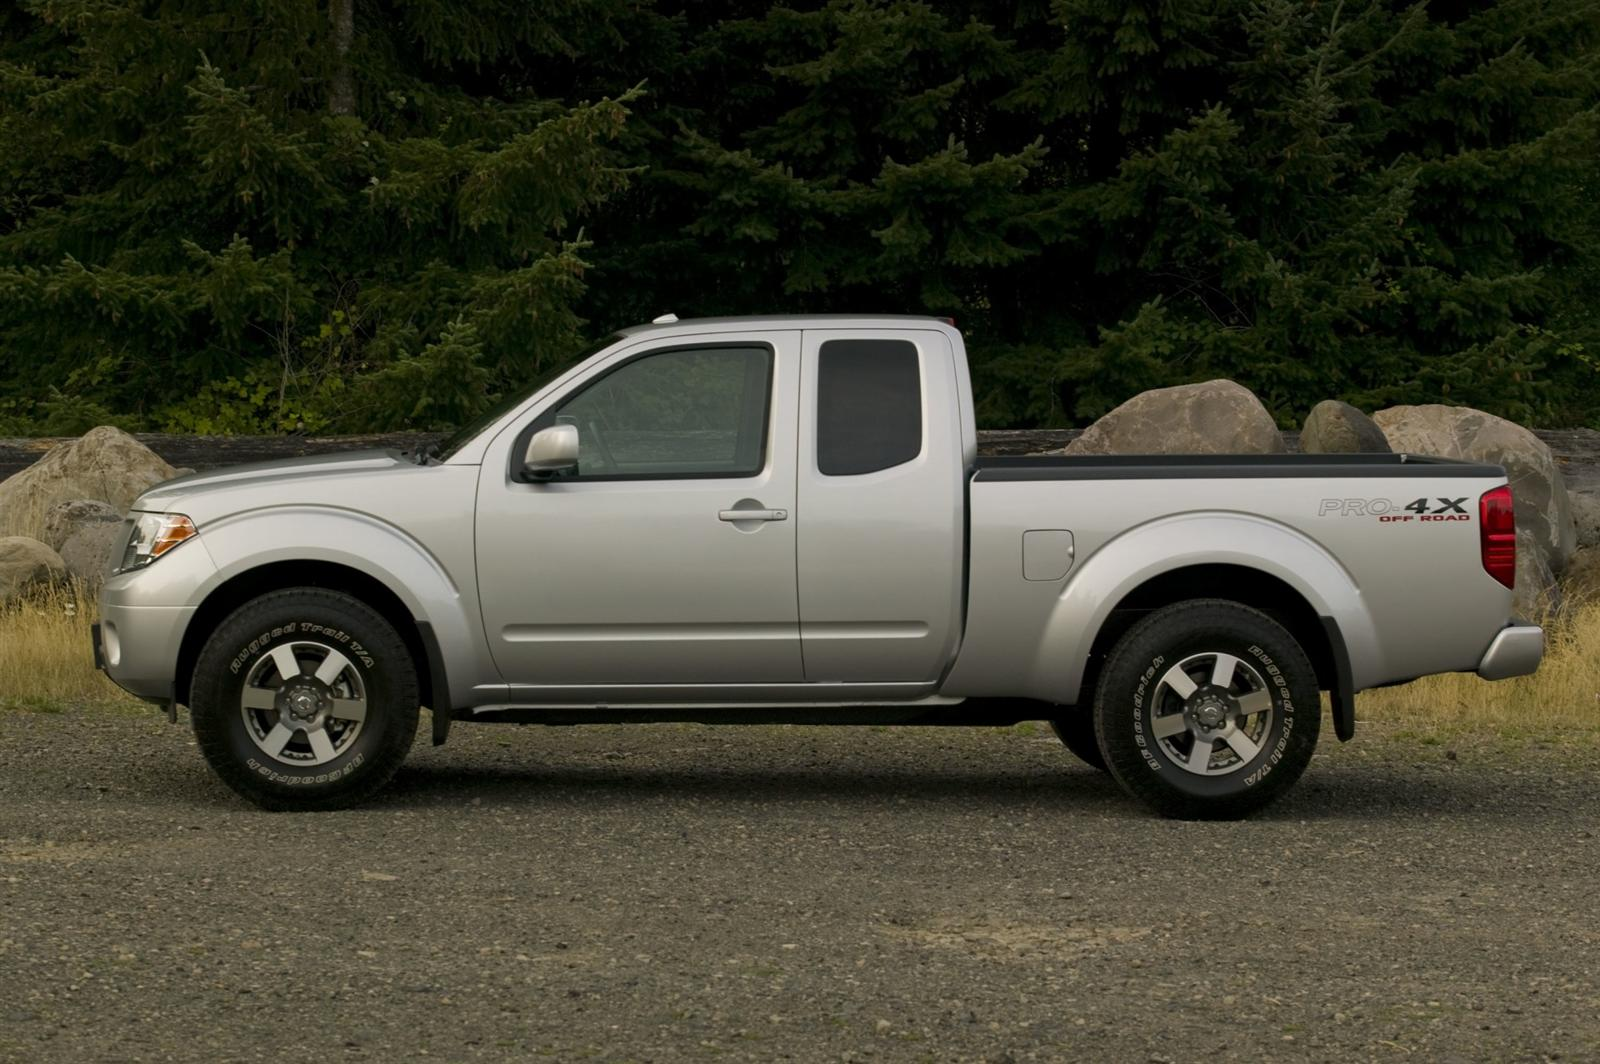 2010 nissan frontier information and photos zombiedrive 2010 nissan frontier 11 nissan frontier 11 vanachro Choice Image